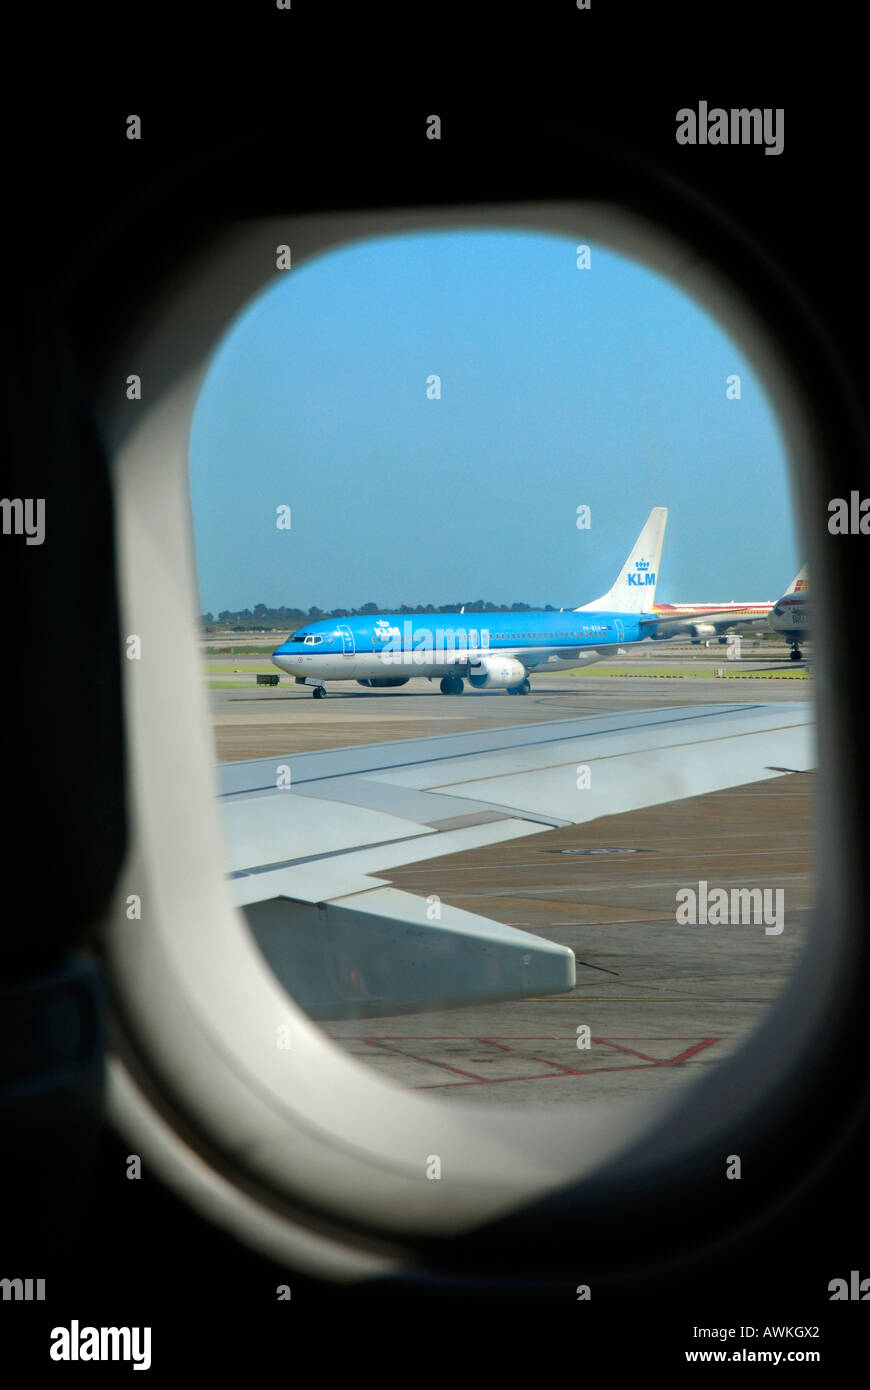 AIRPLANE WINDOW VIEW OUT A AEROPLANE Stock Photo, Royalty ...